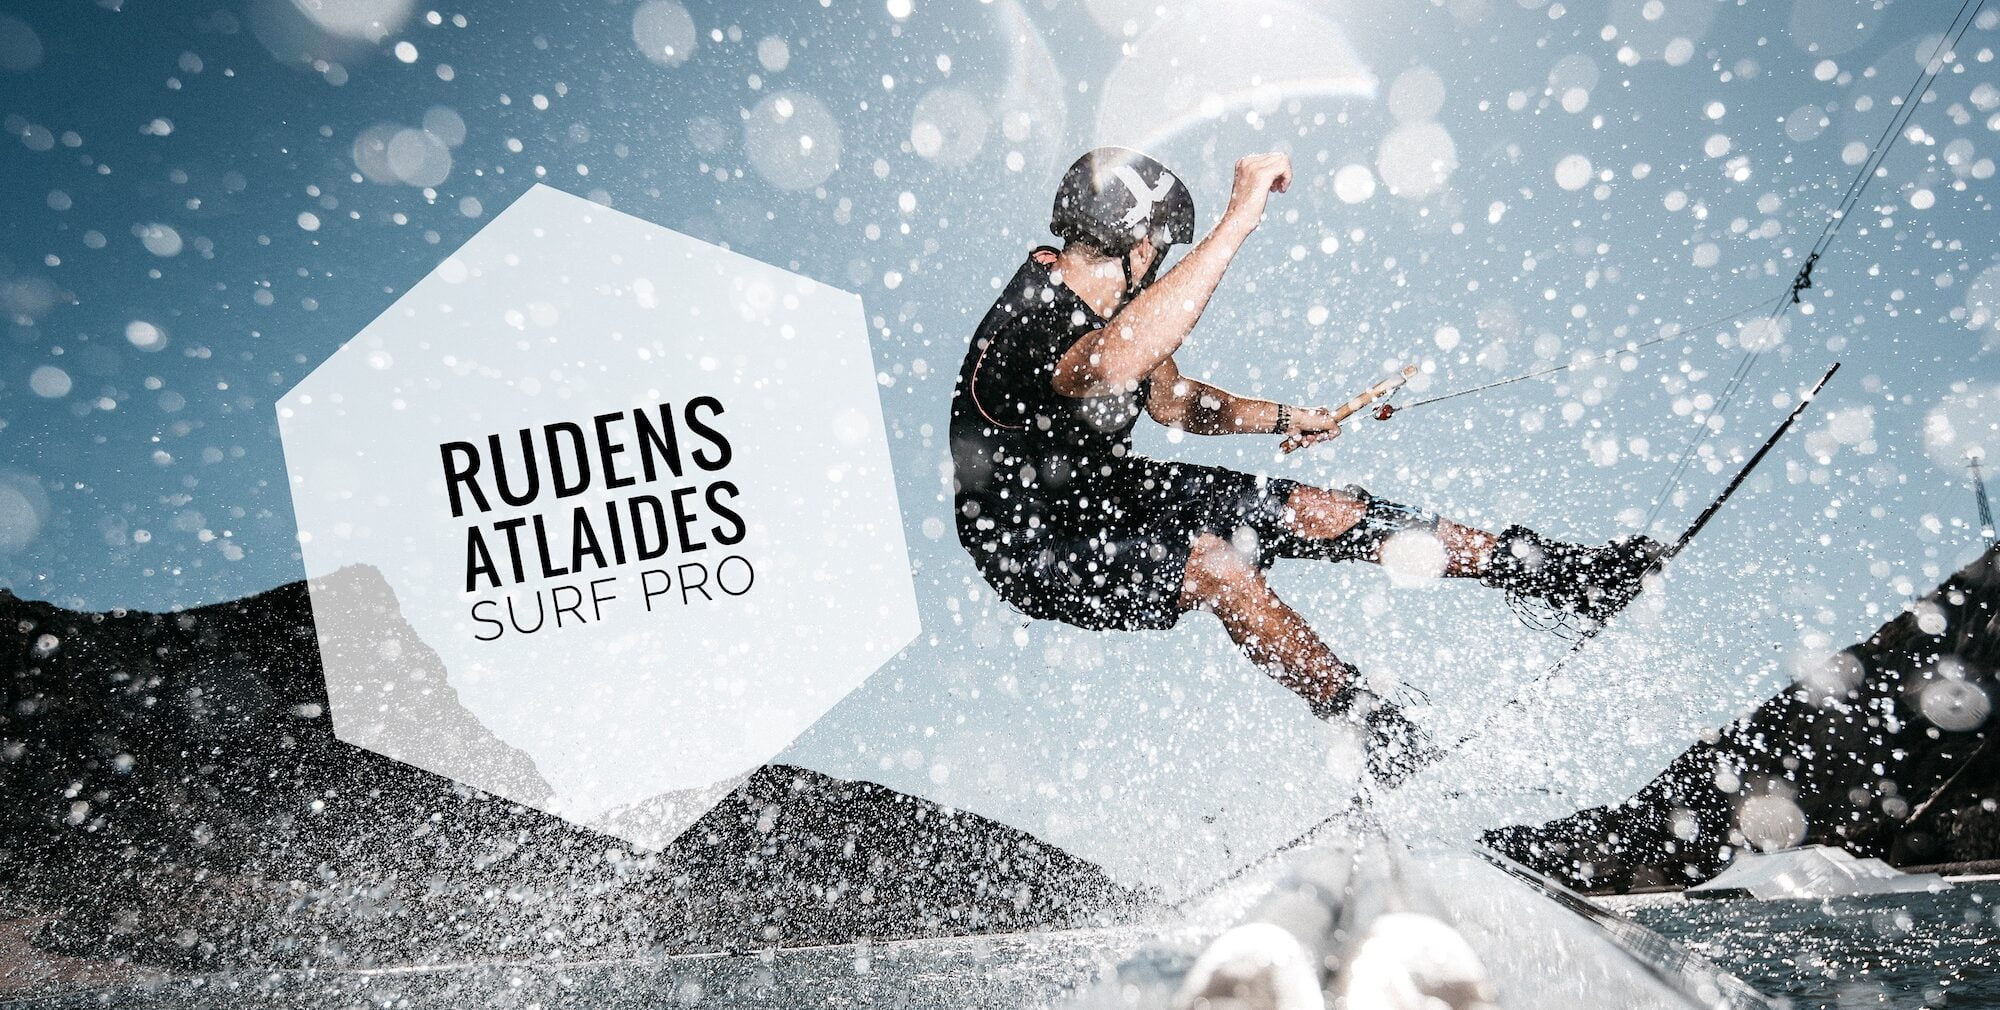 surf pro rudens atlaides